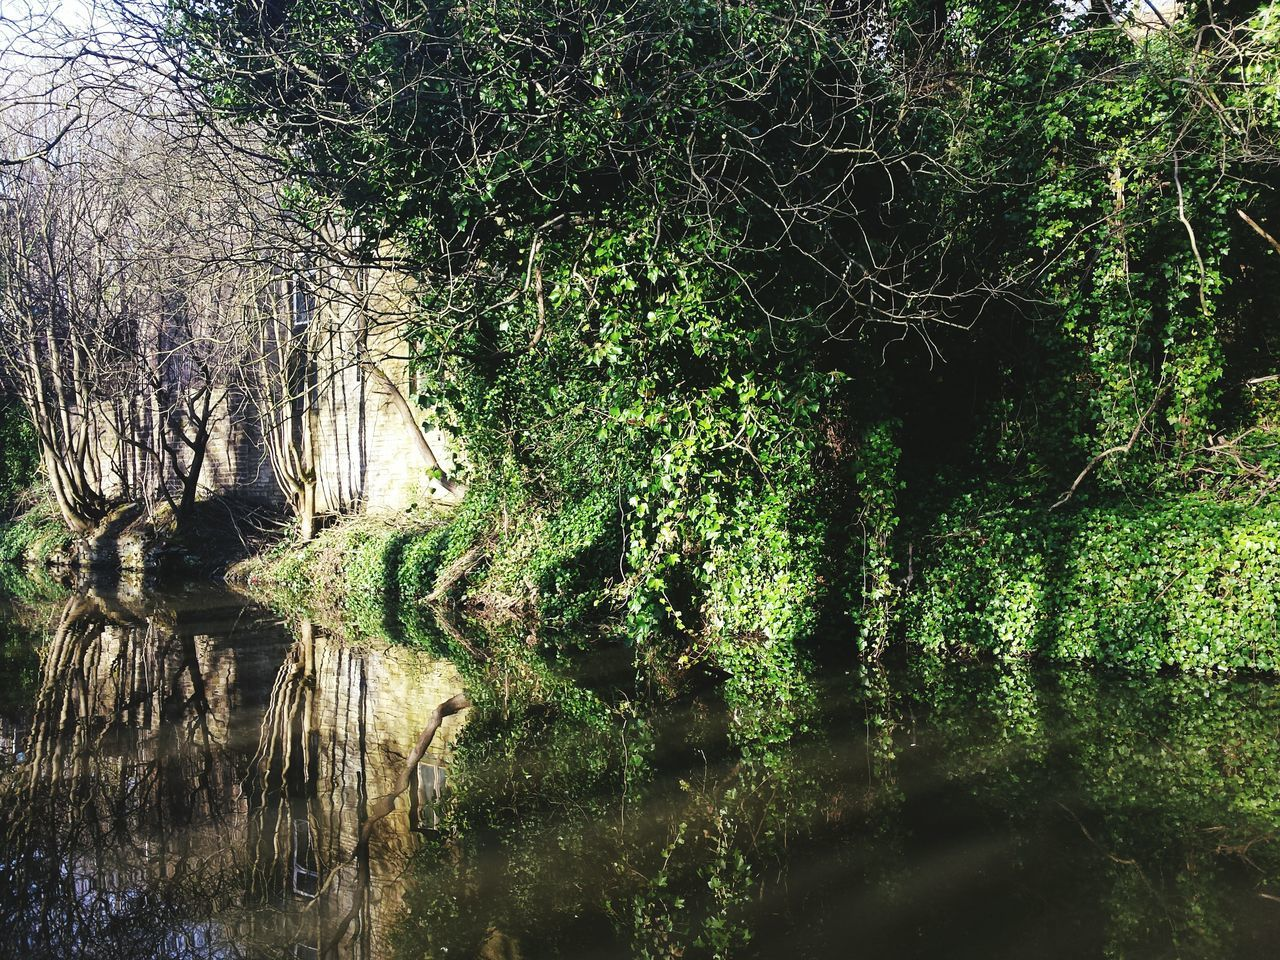 Tree Nature Growth Water No People Green Color Backgrounds Tranquility Outdoors Beauty In Nature Day Close-up Sky Reflection Reflections Canal Springtime Freshness Beauty In Nature Landscapes Landscape Yorkshire Green Leaves Nature